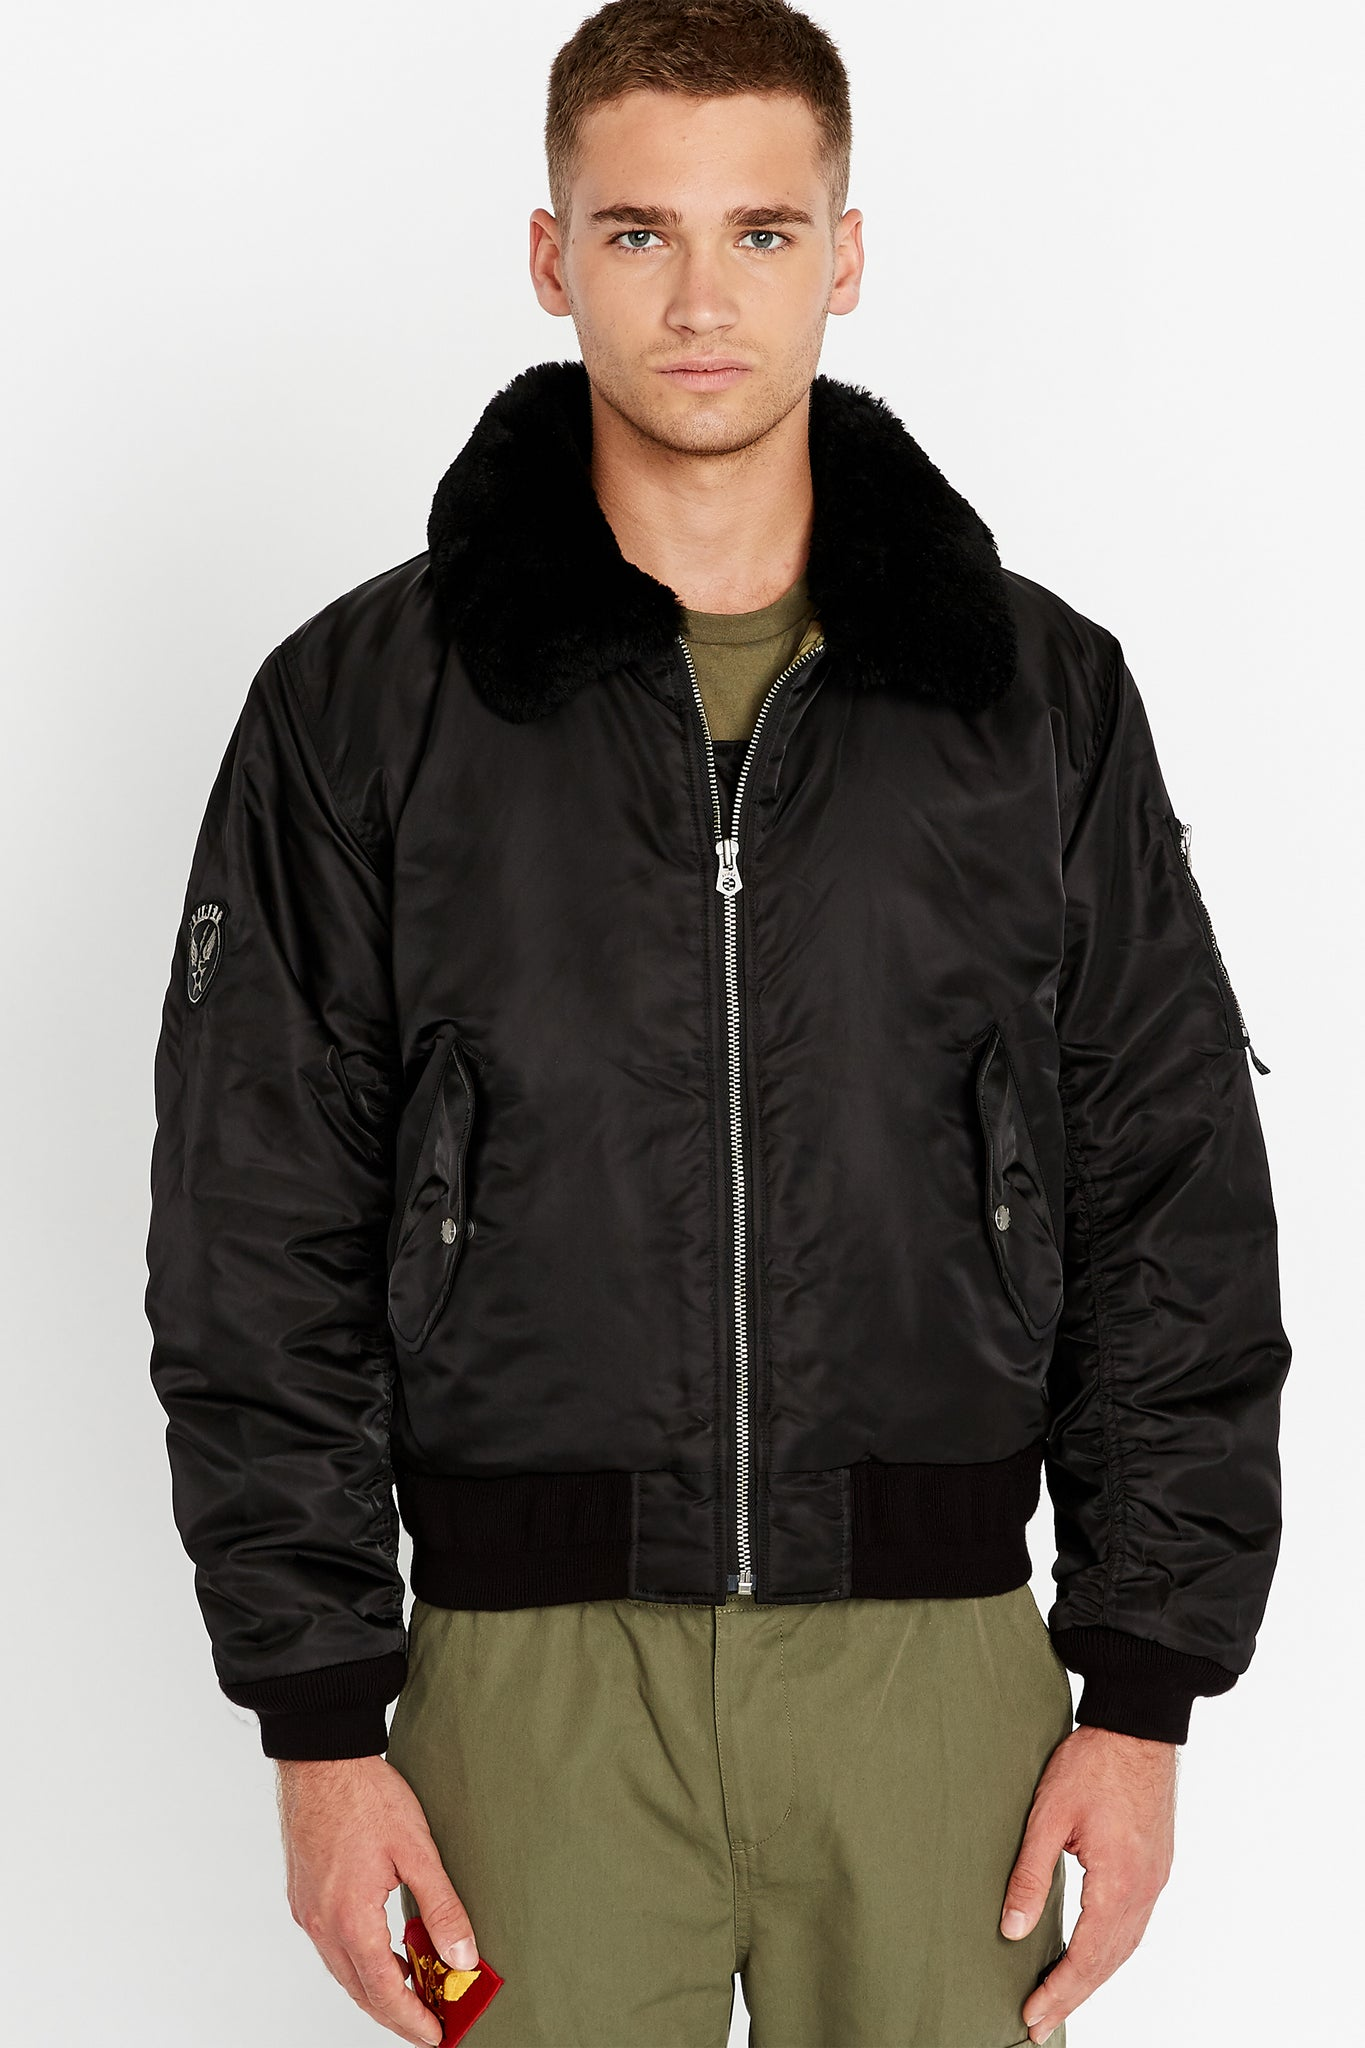 Front view of men wearing a fully zipped black bomber jacket with a sherpa-lined collar and two side flap pockets and one patch on the right sleeve, one utility pocket on the left sleeve